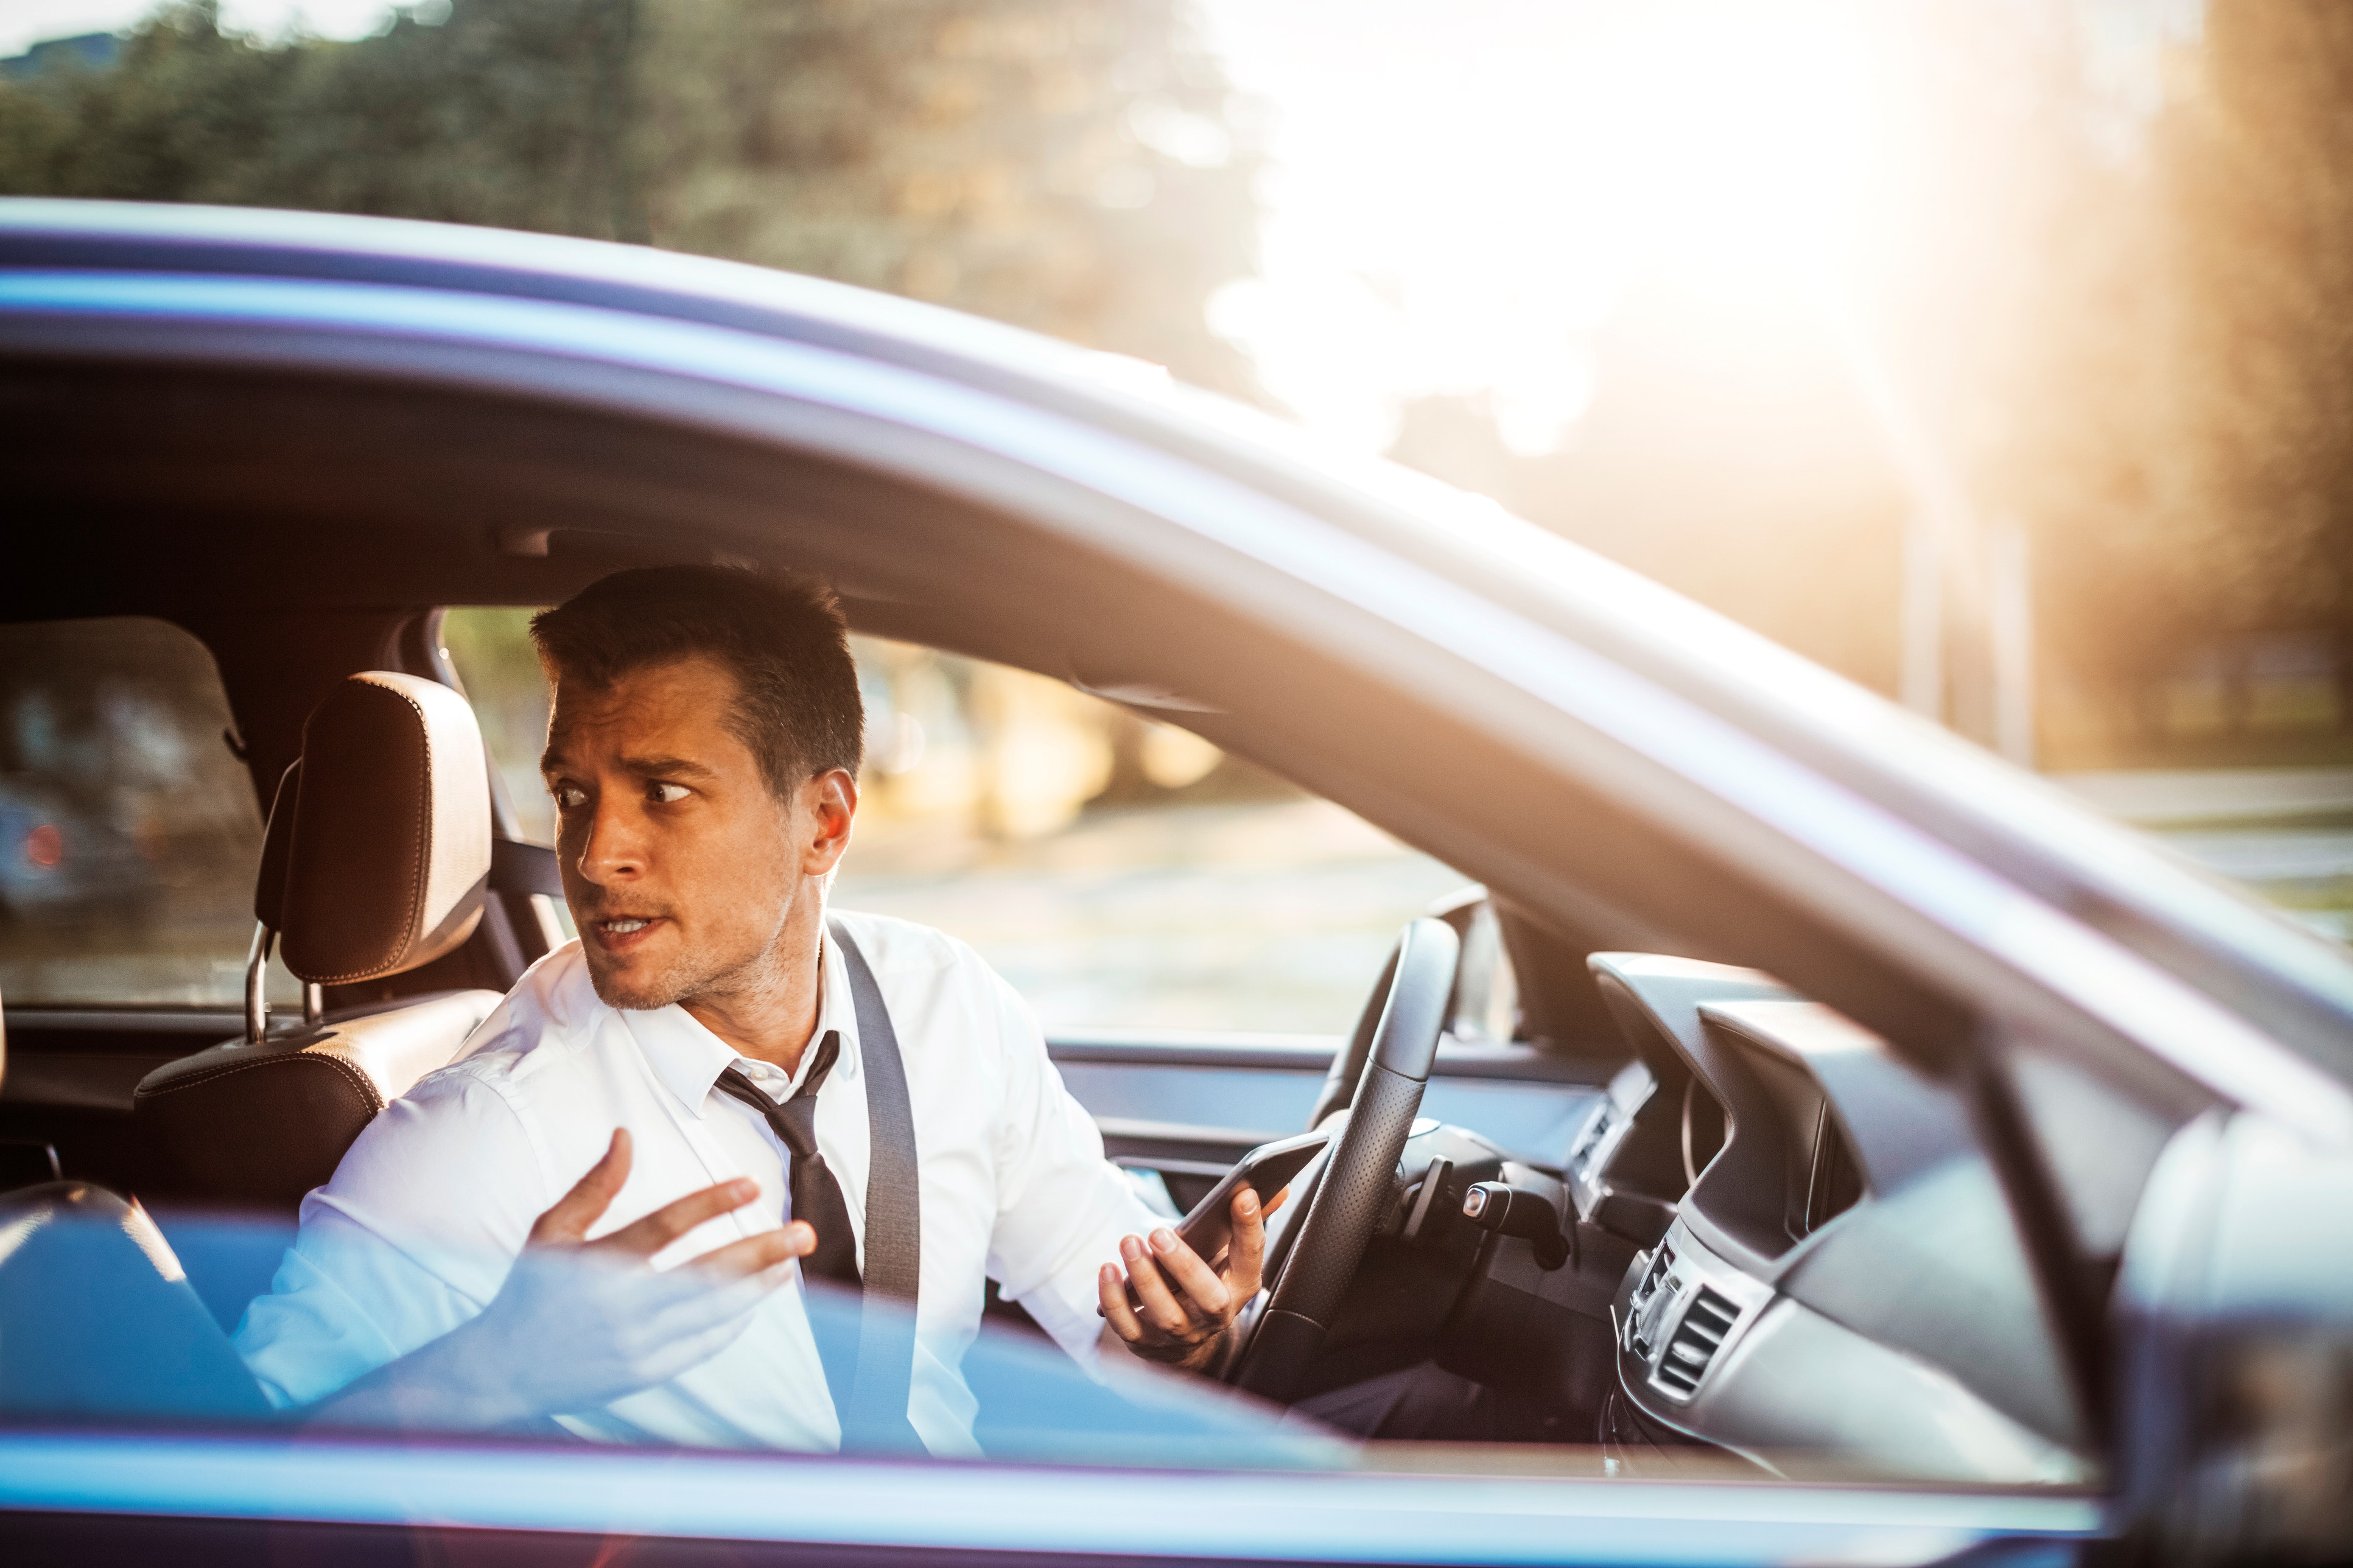 Survey Reveals Drivers May Be Their Own Worst Enemy On The Road